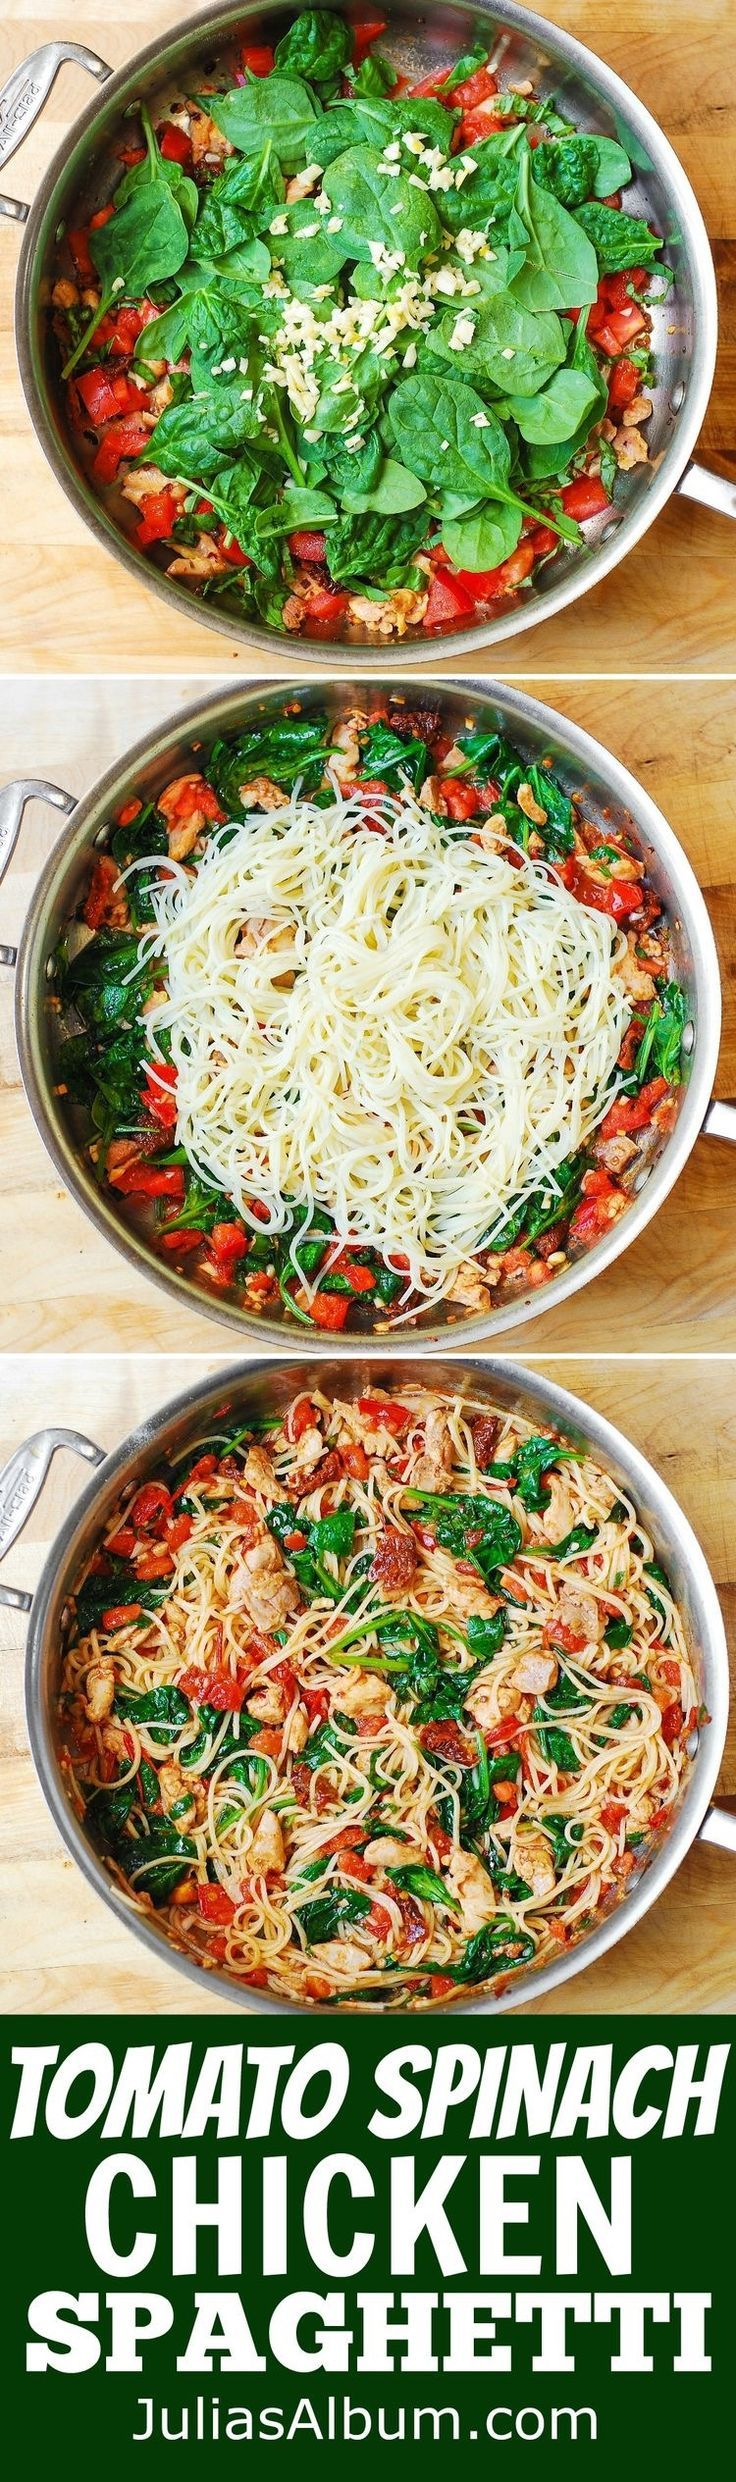 Tomato Spinach Chicken Spaghetti (Carrot Noodle Recipes)